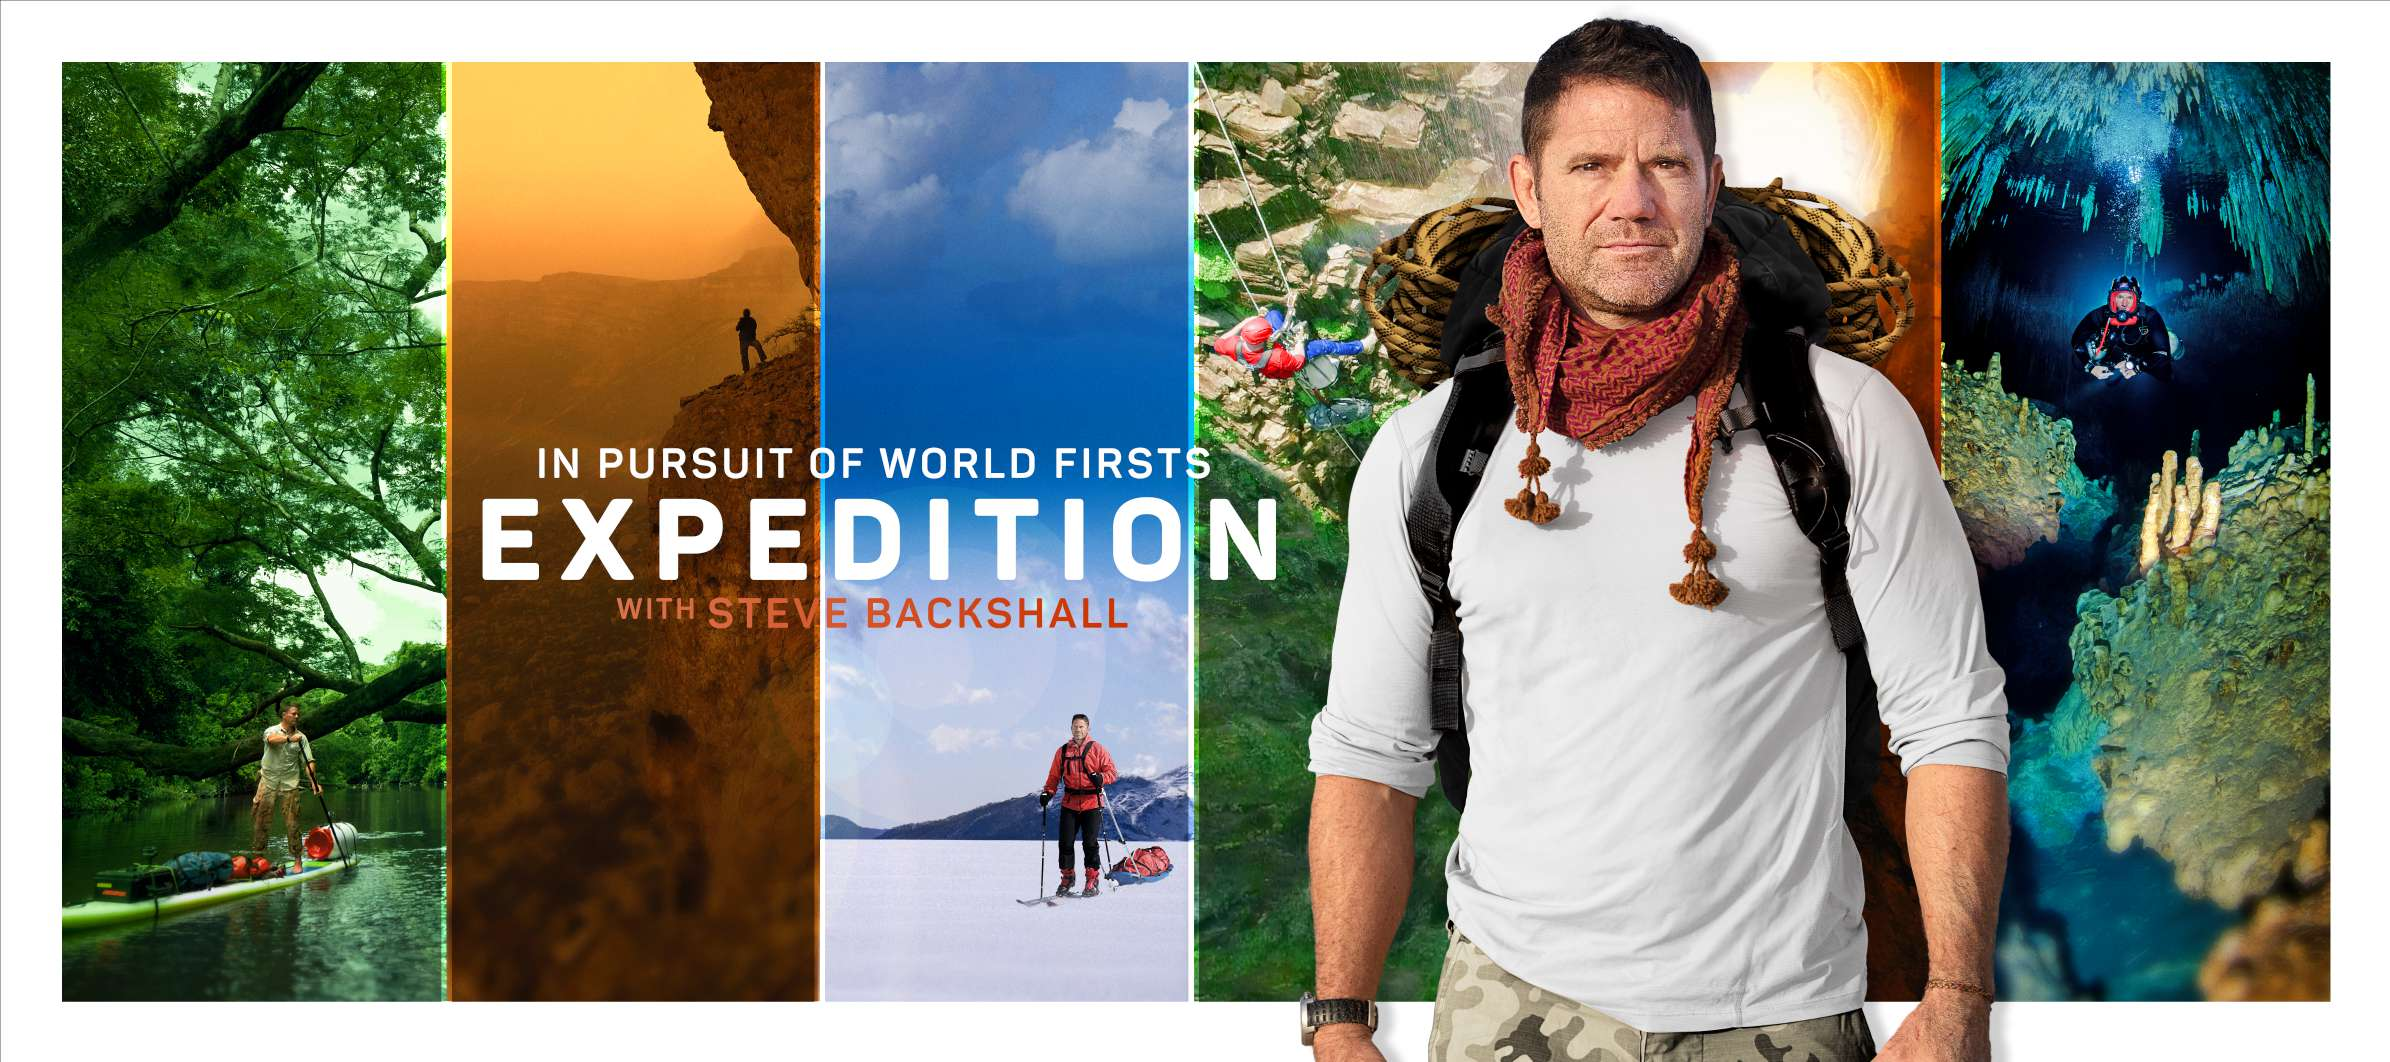 Expedition Steve Backshall artwork with text.jpeg